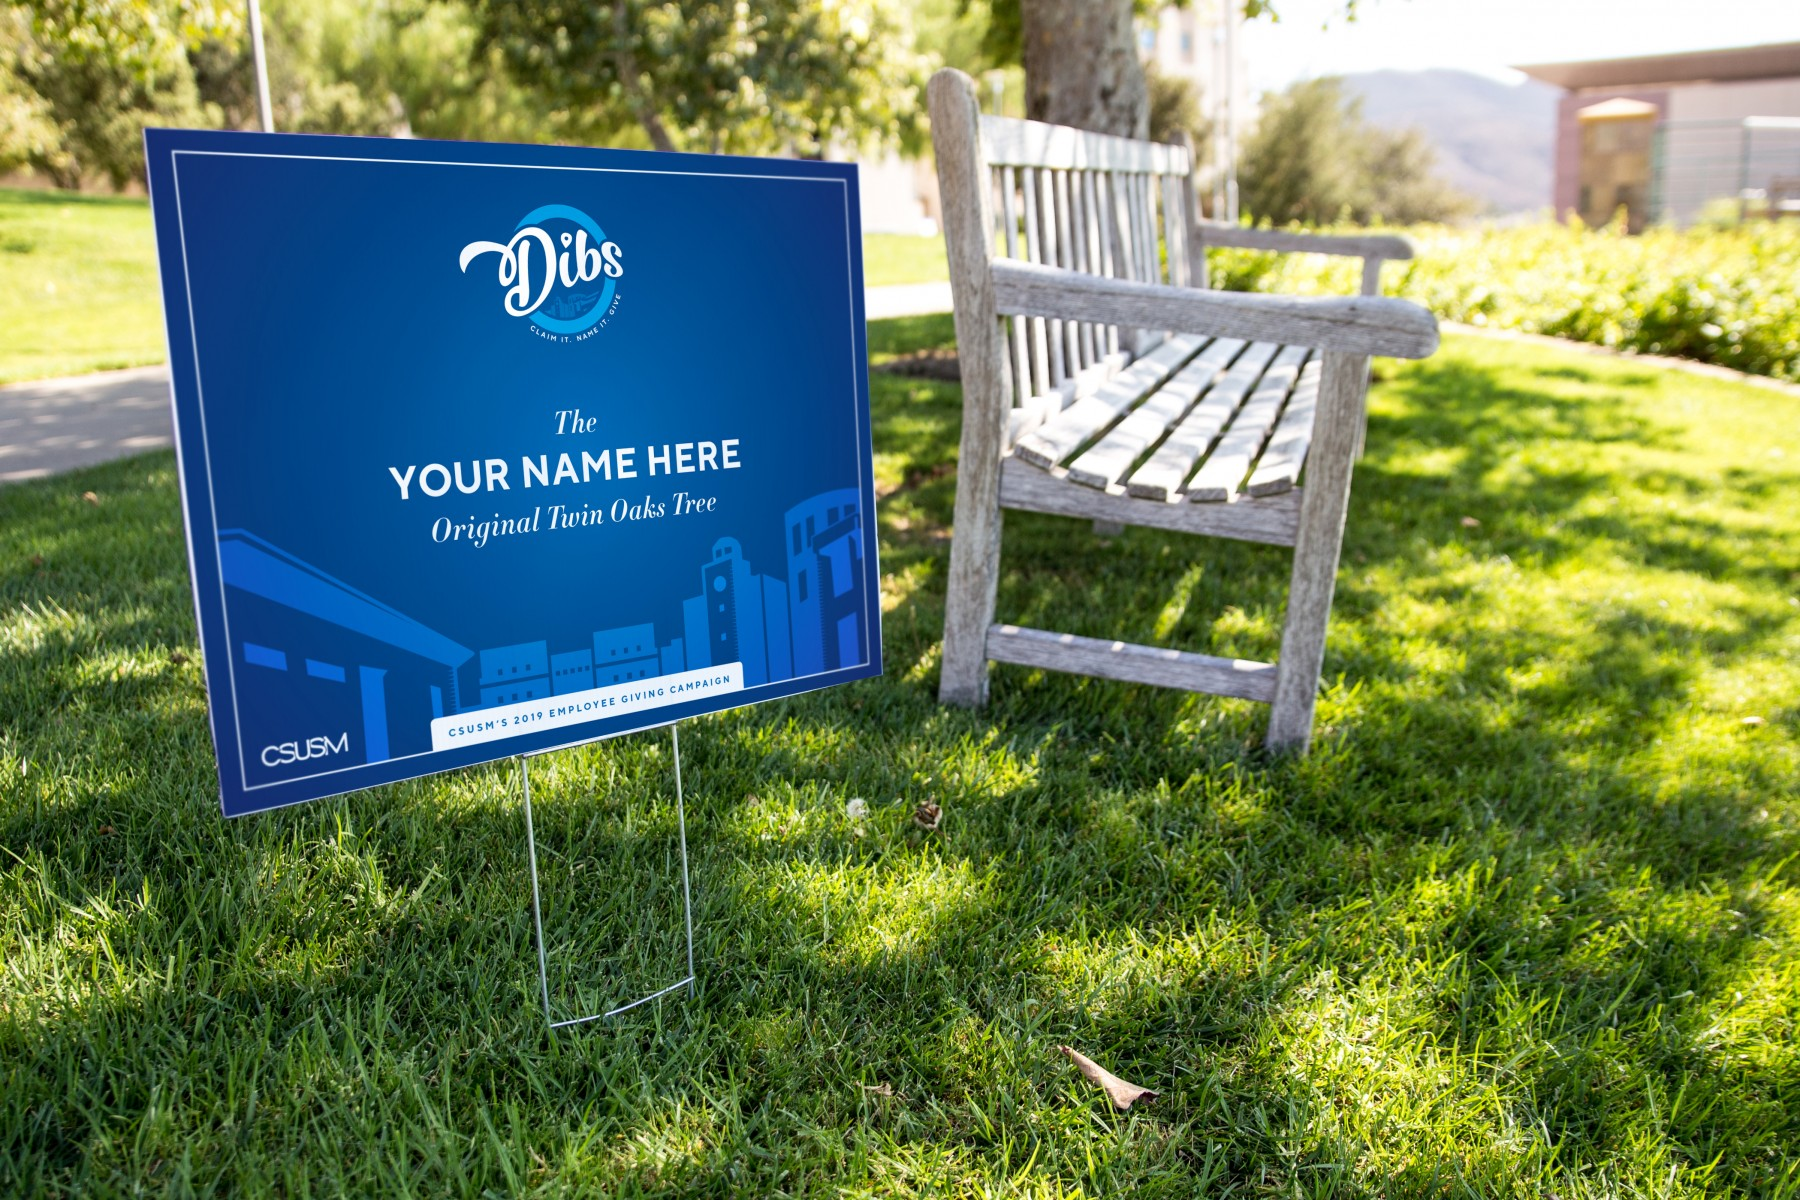 Dibs signs will pop up around campus for 15 days starting on Oct. 1.